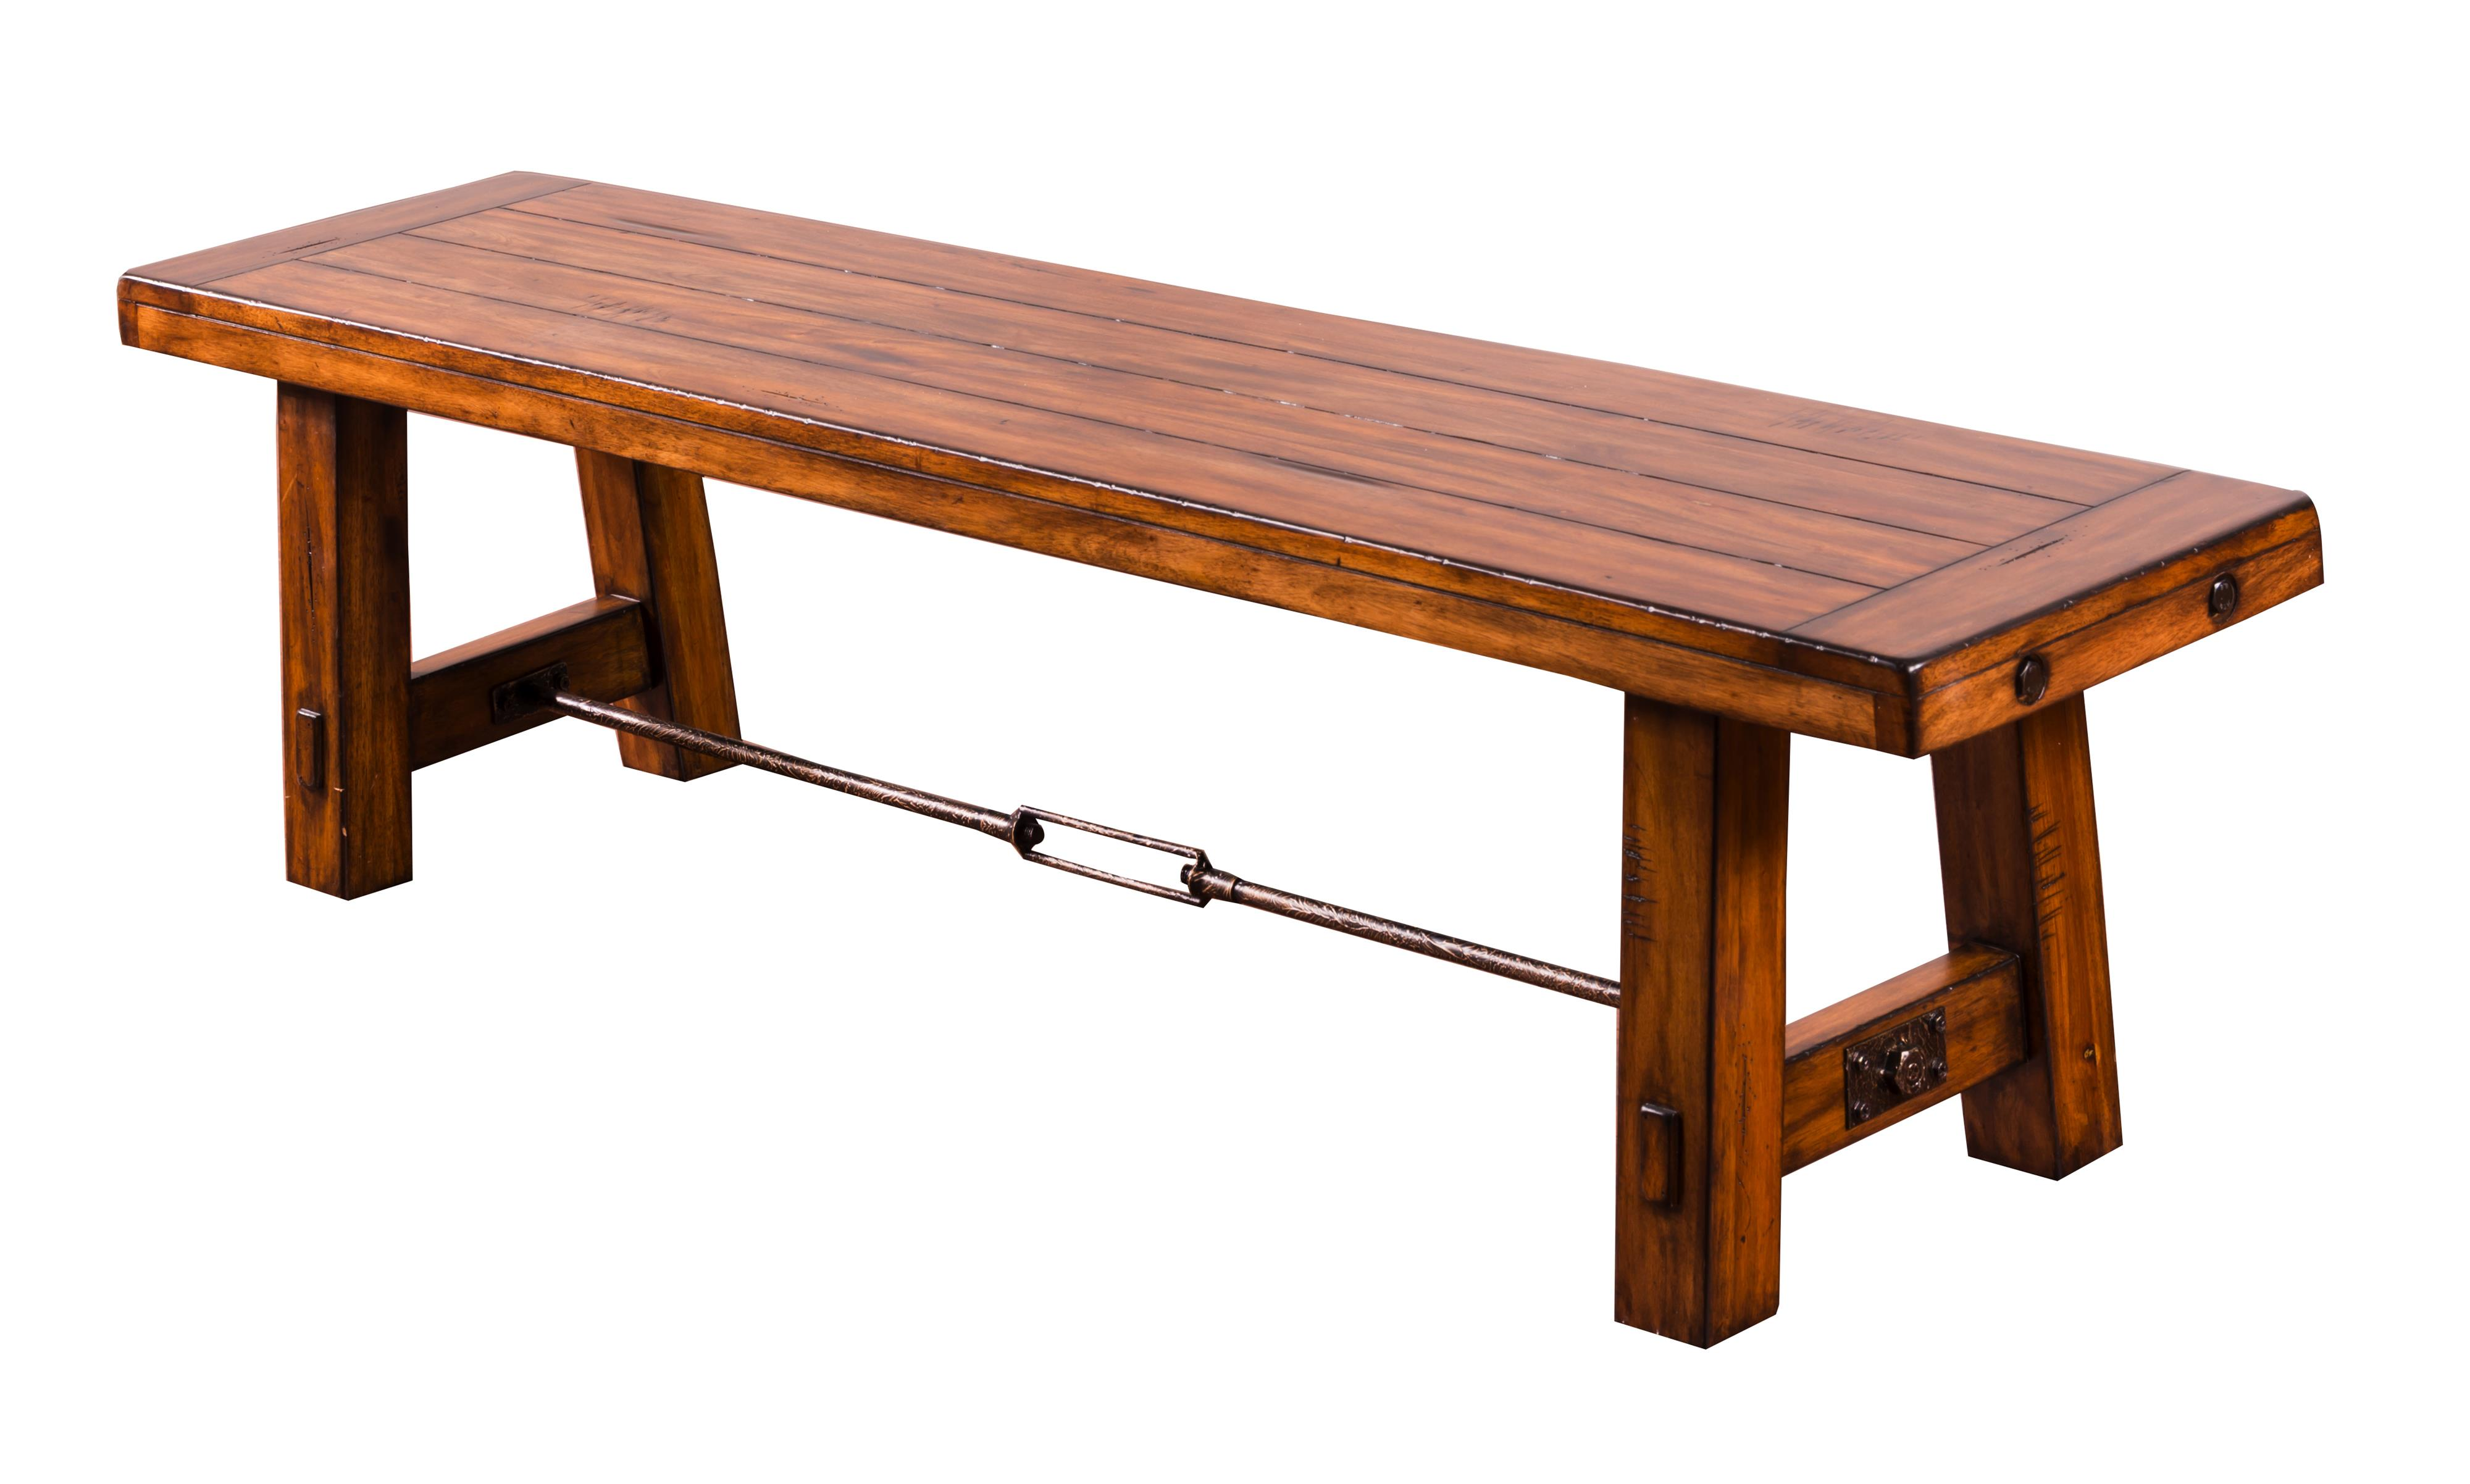 Tremont Tremont Dining Bench by Sunny Designs at Morris Home